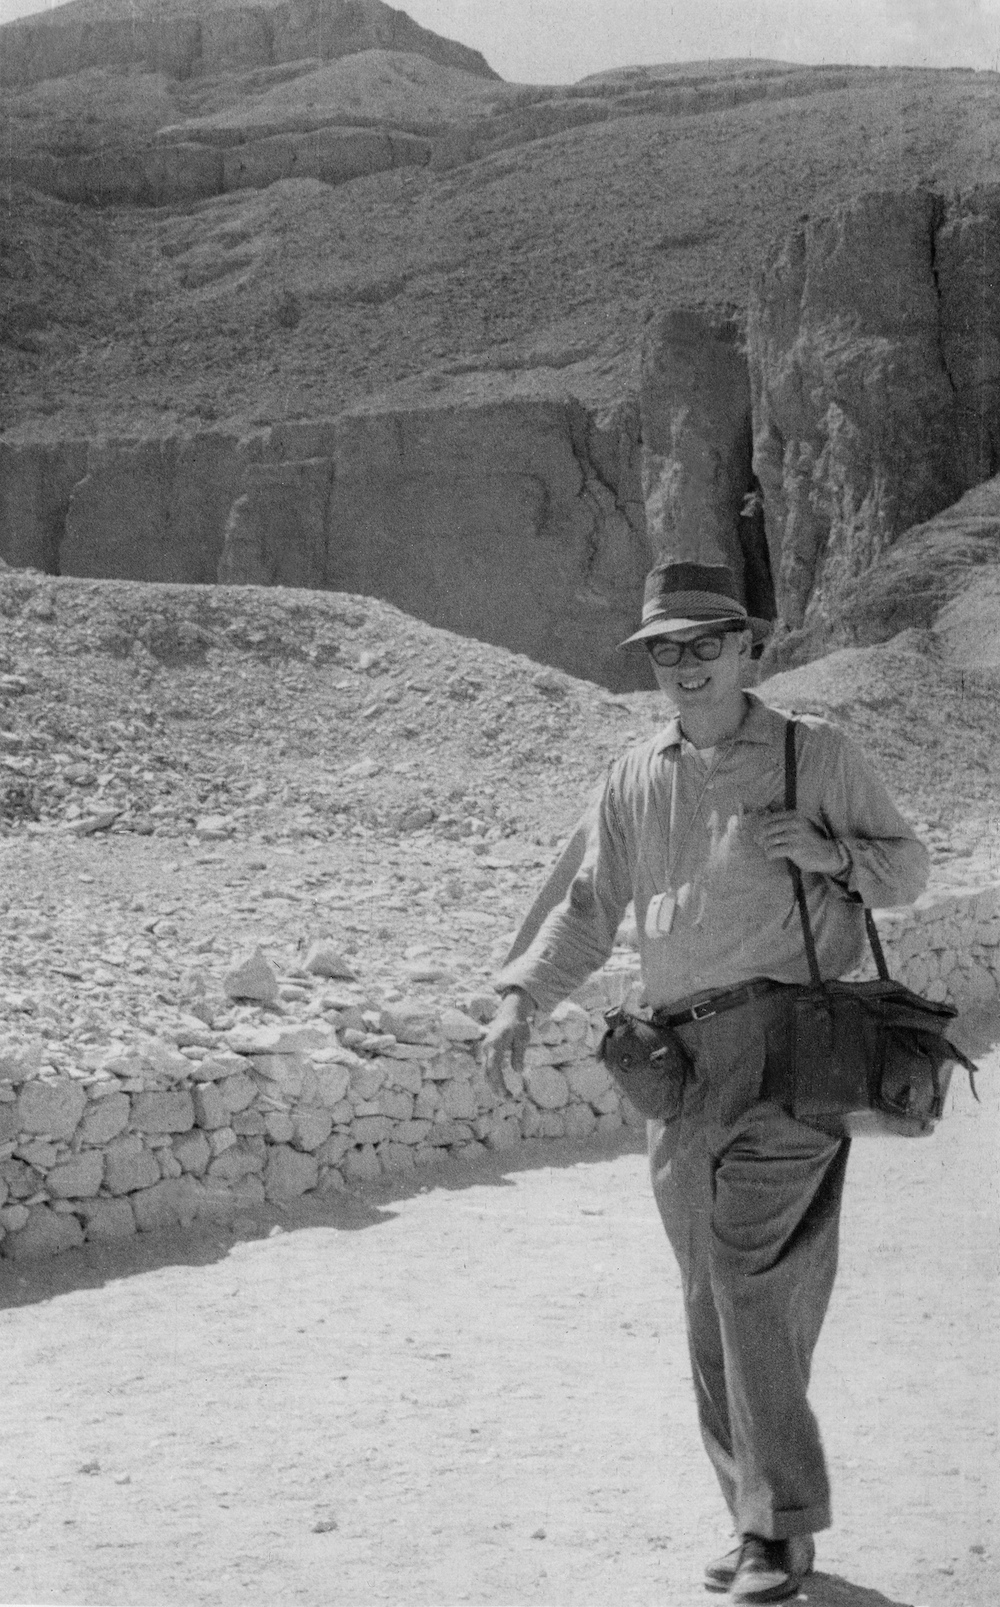 While stationed in Crete, the Bye family visited the Holy Land. In this photo, Don is prepared with his camera gear and light meter.